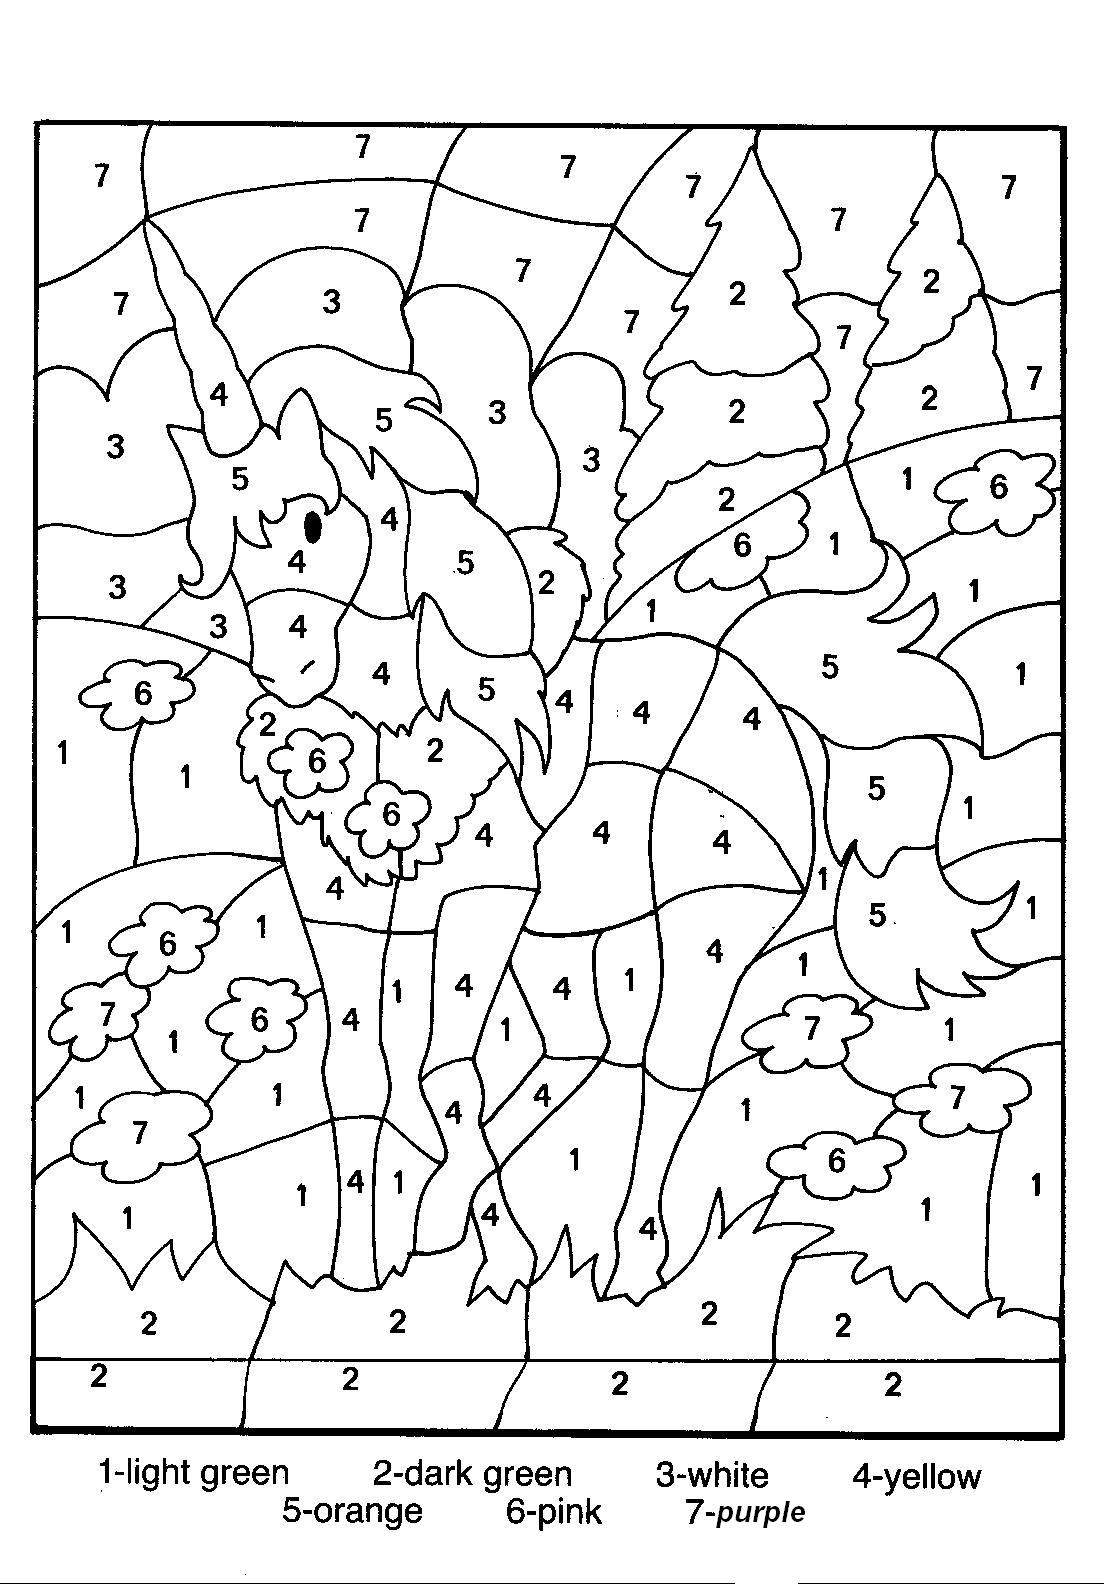 coloring pages with numbers - Butterfly Color Sheet